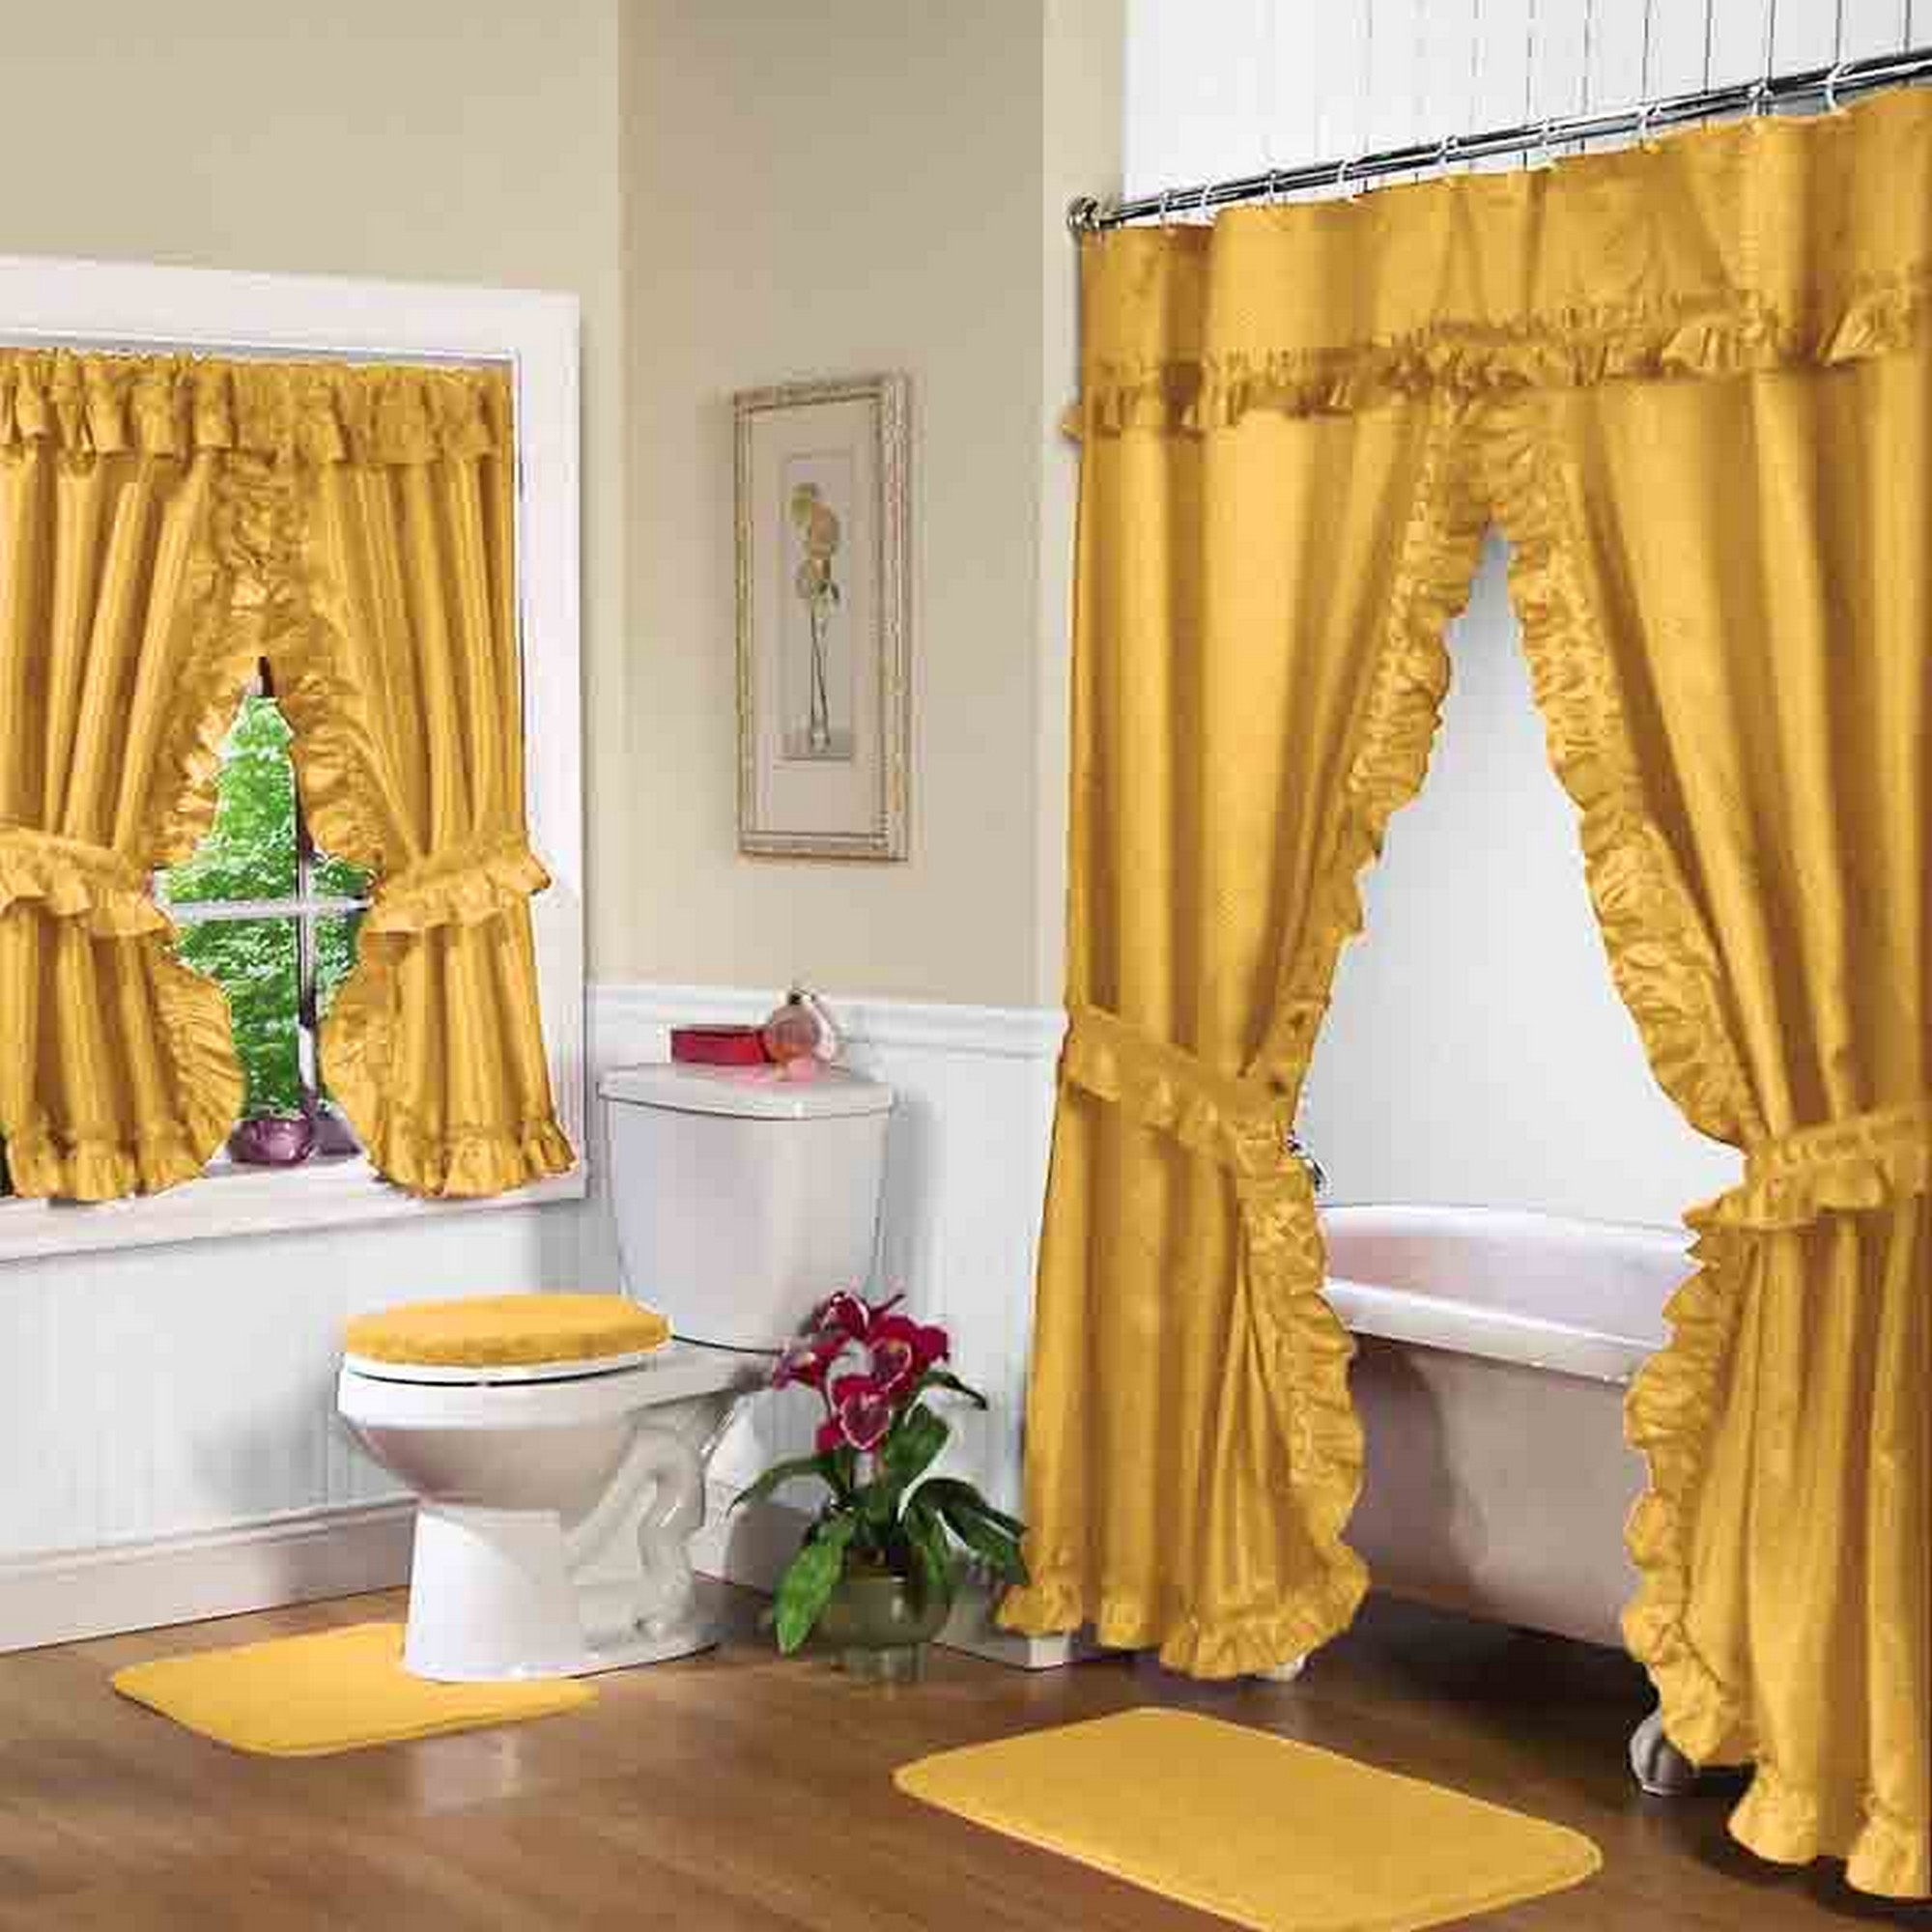 Gold Shower Curtain With Valance For Luxury Bathroom Decor With intended for dimensions 2000 X 2000